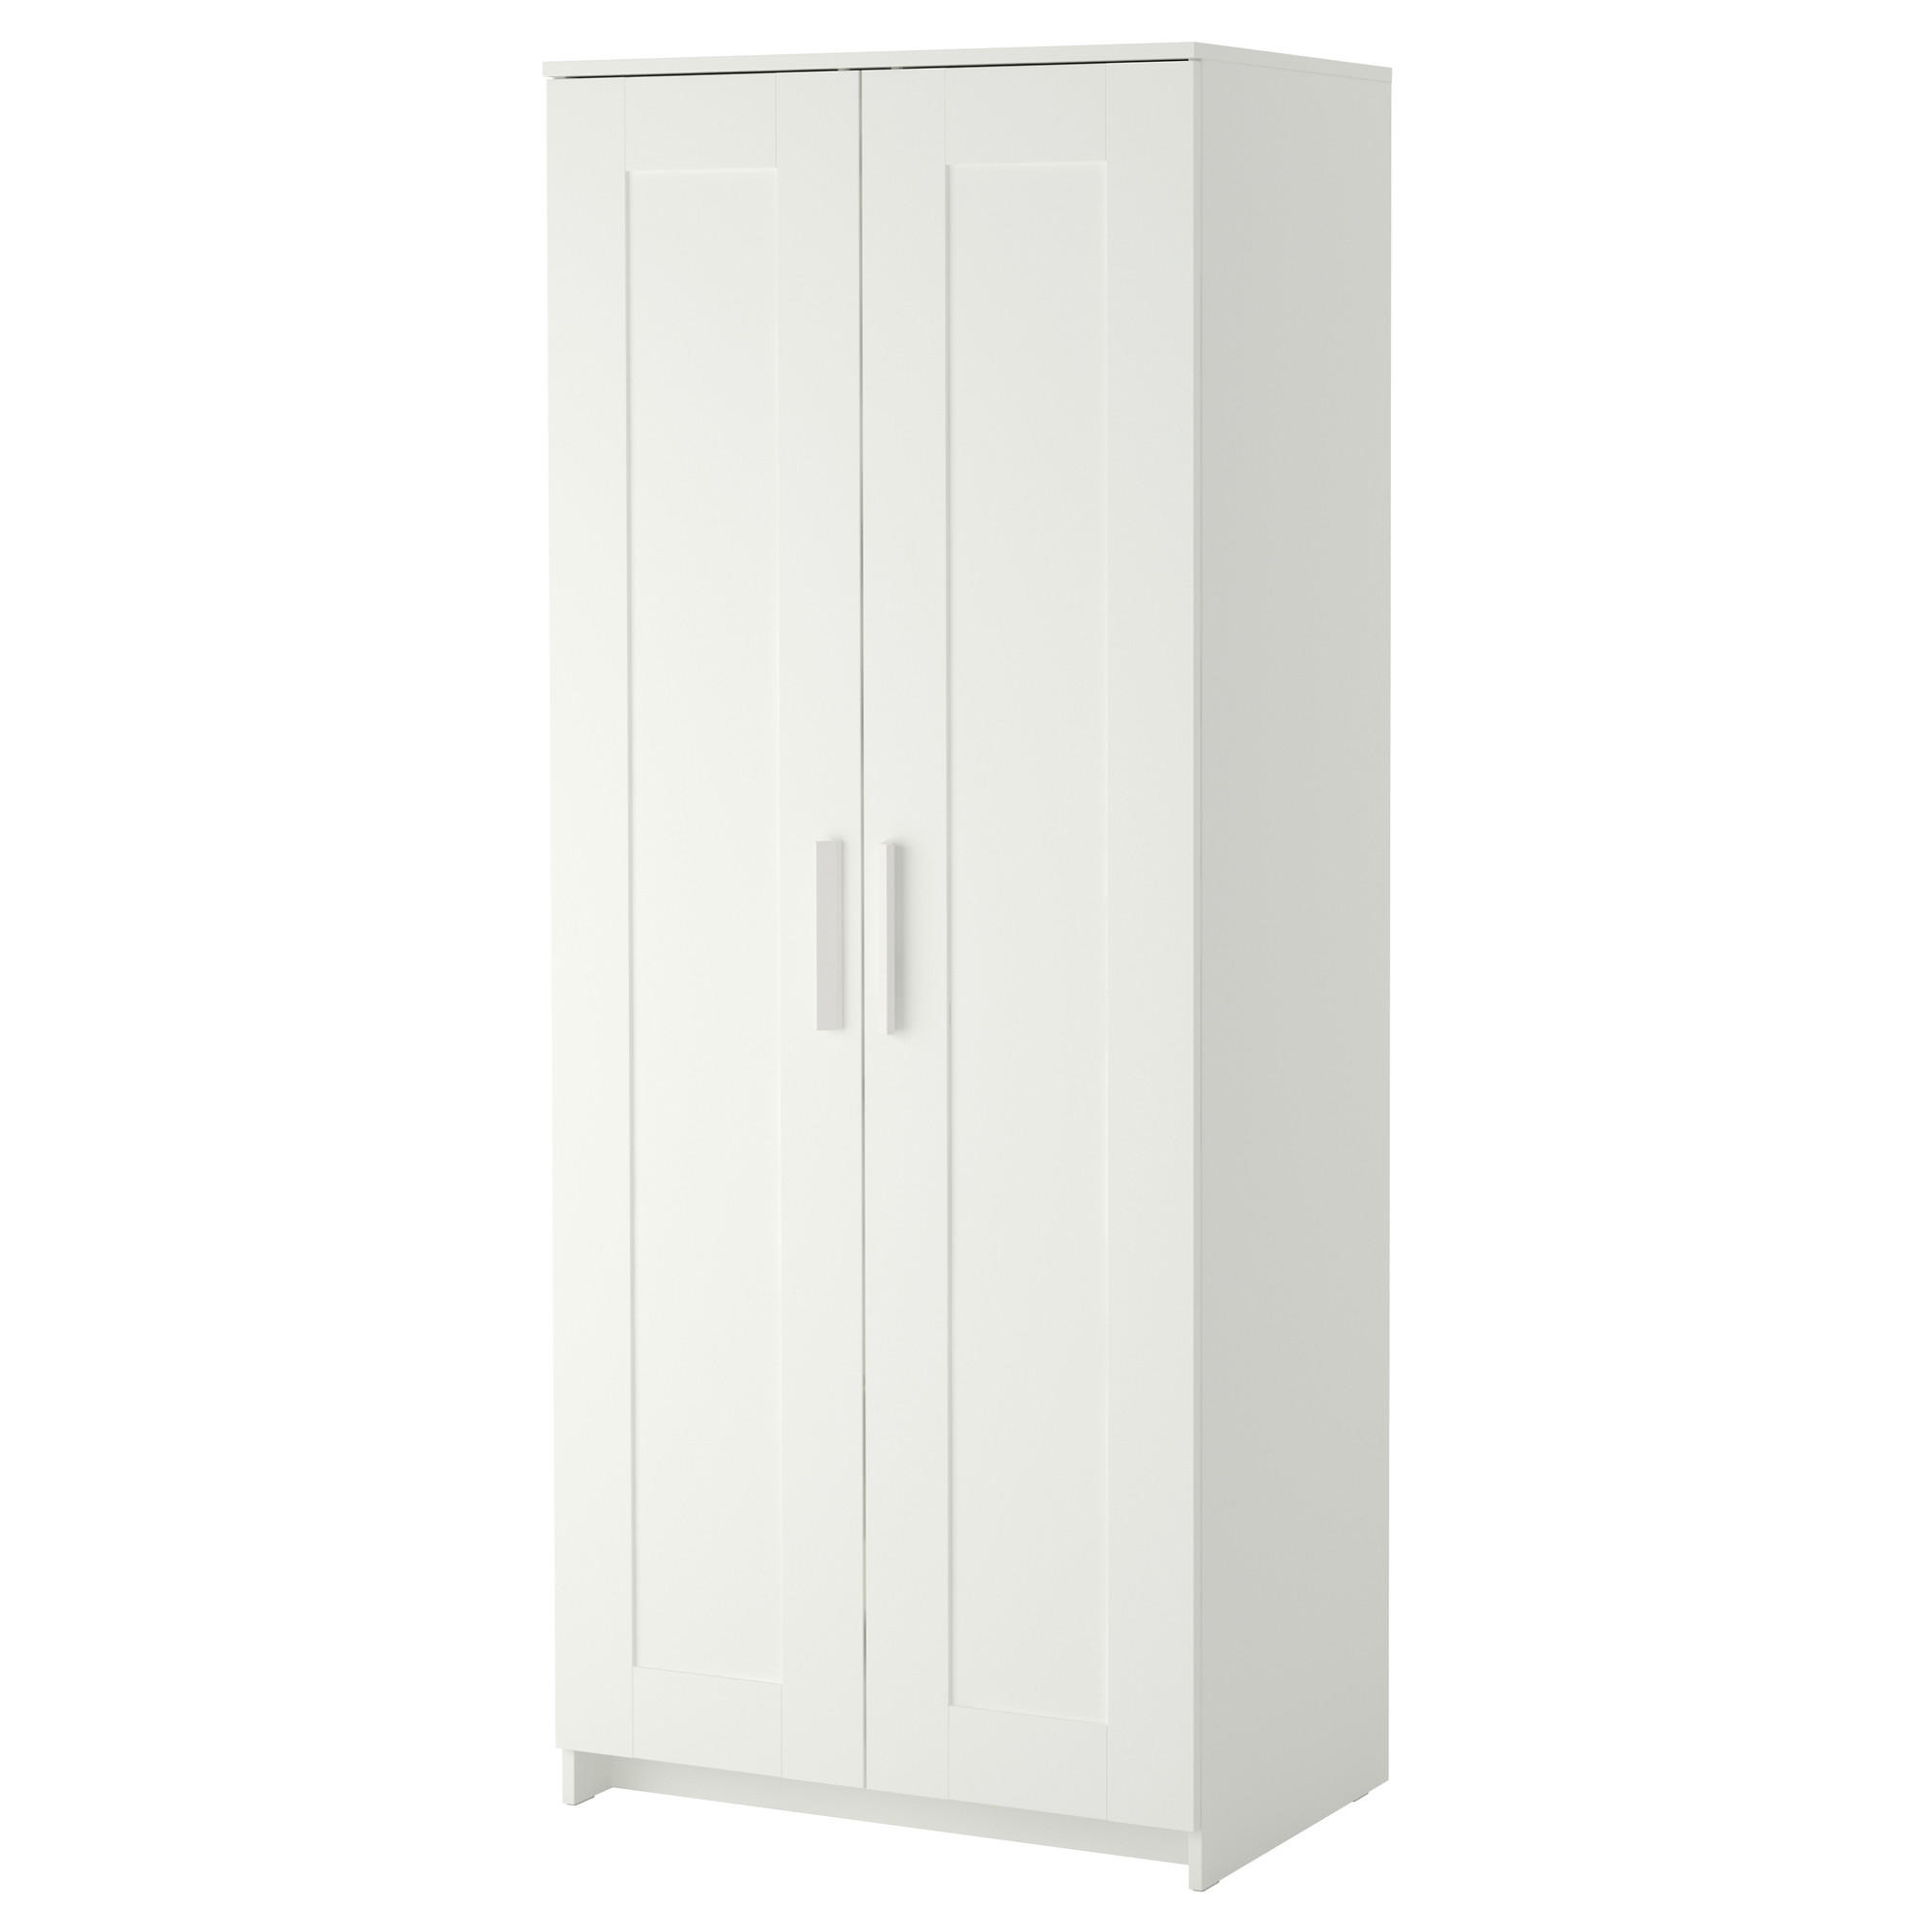 Armoire Ikea Largeur 120 Brimnes Wardrobe With 2 Doors Ikea From Ikea Home